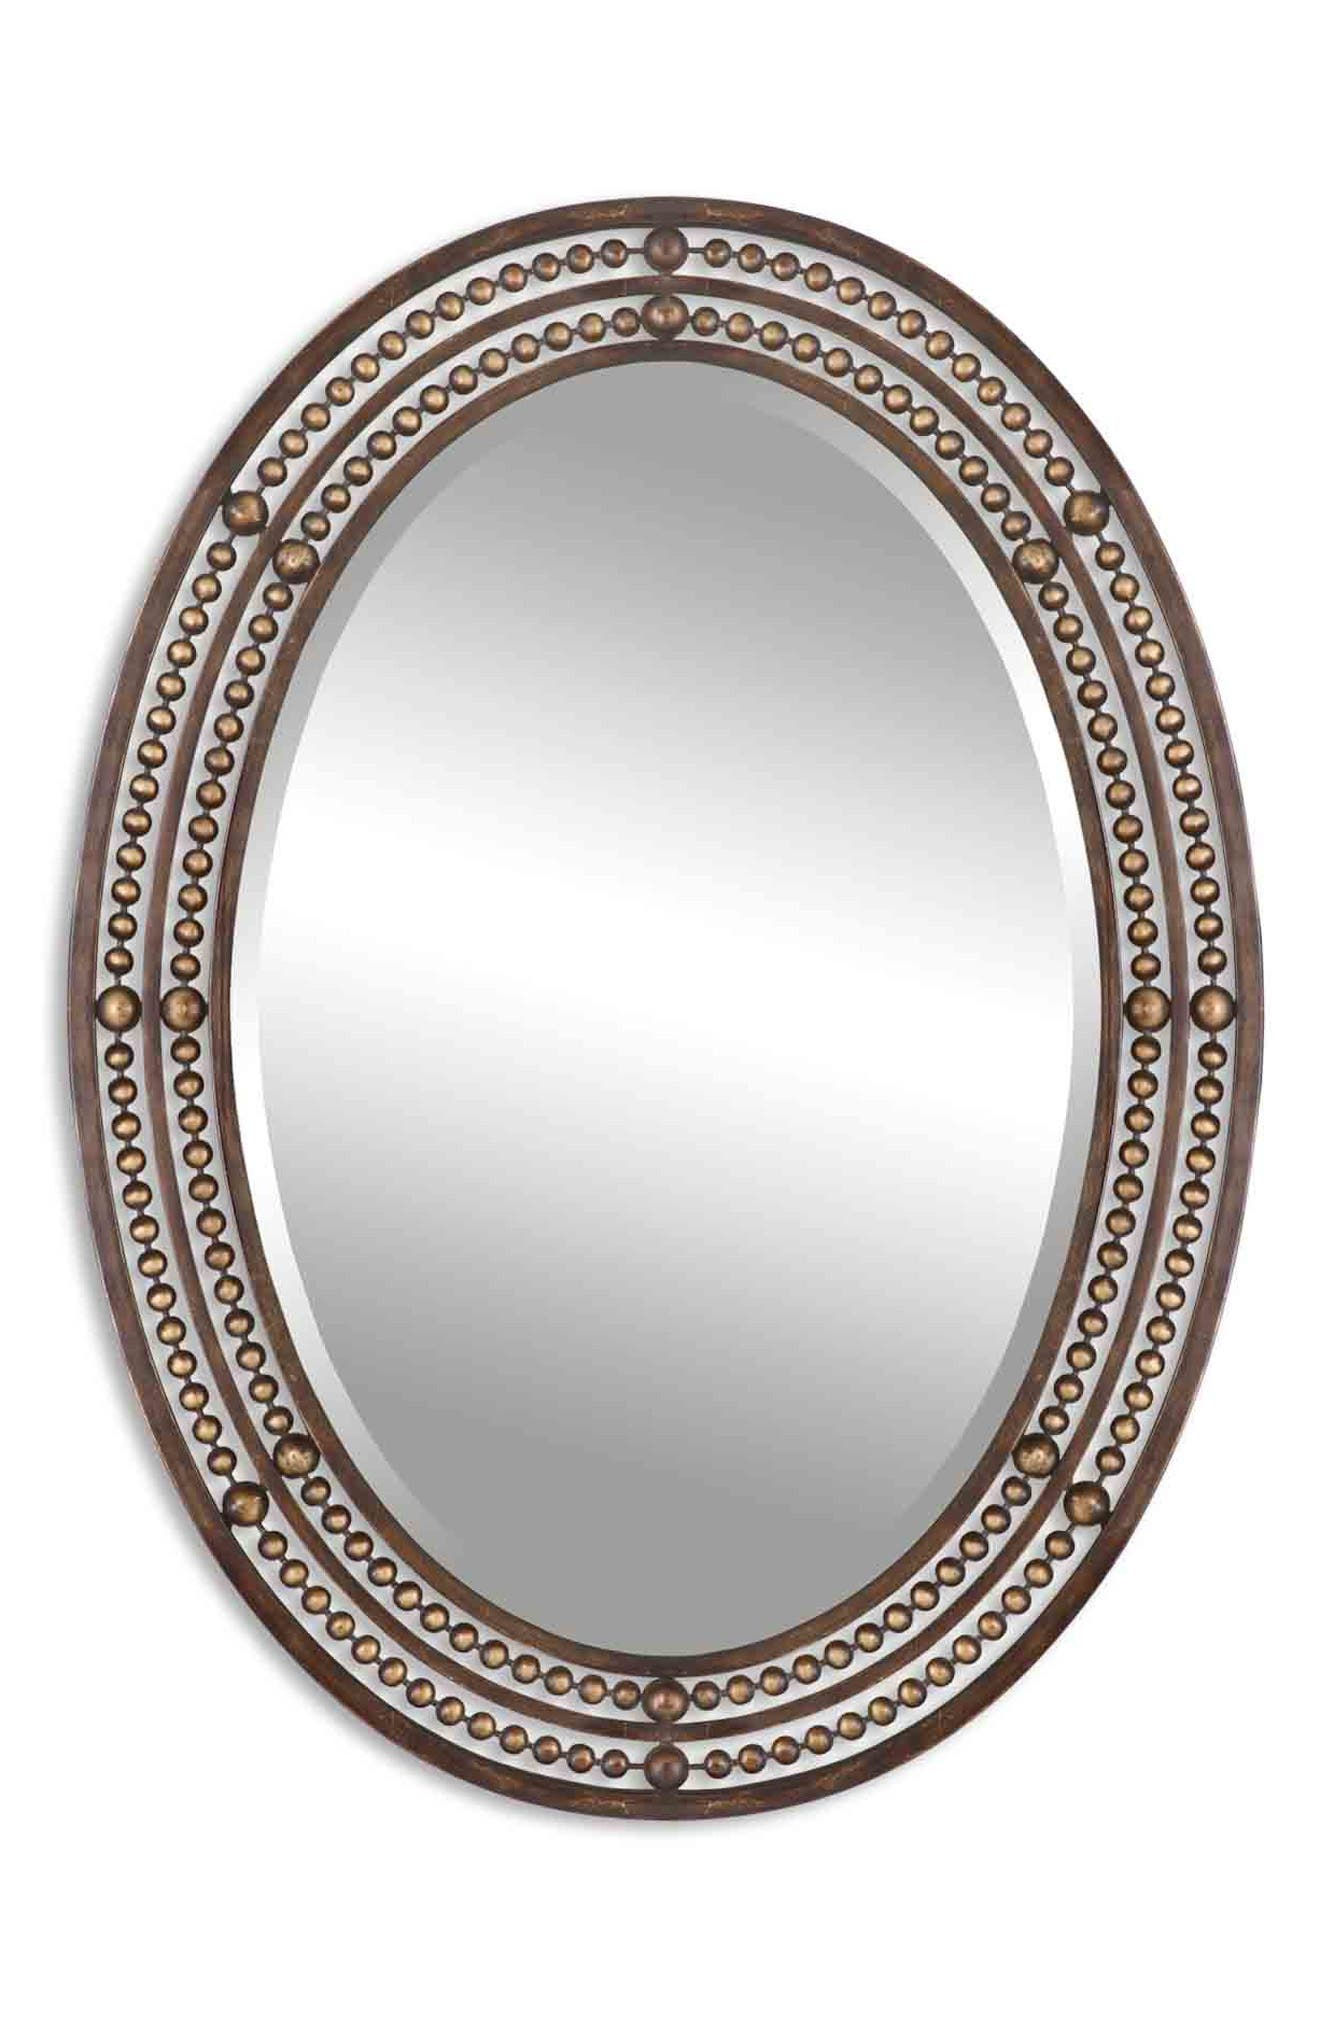 'Matney' Distressed Bronze Oval Wall Mirror,                             Alternate thumbnail 4, color,                             200